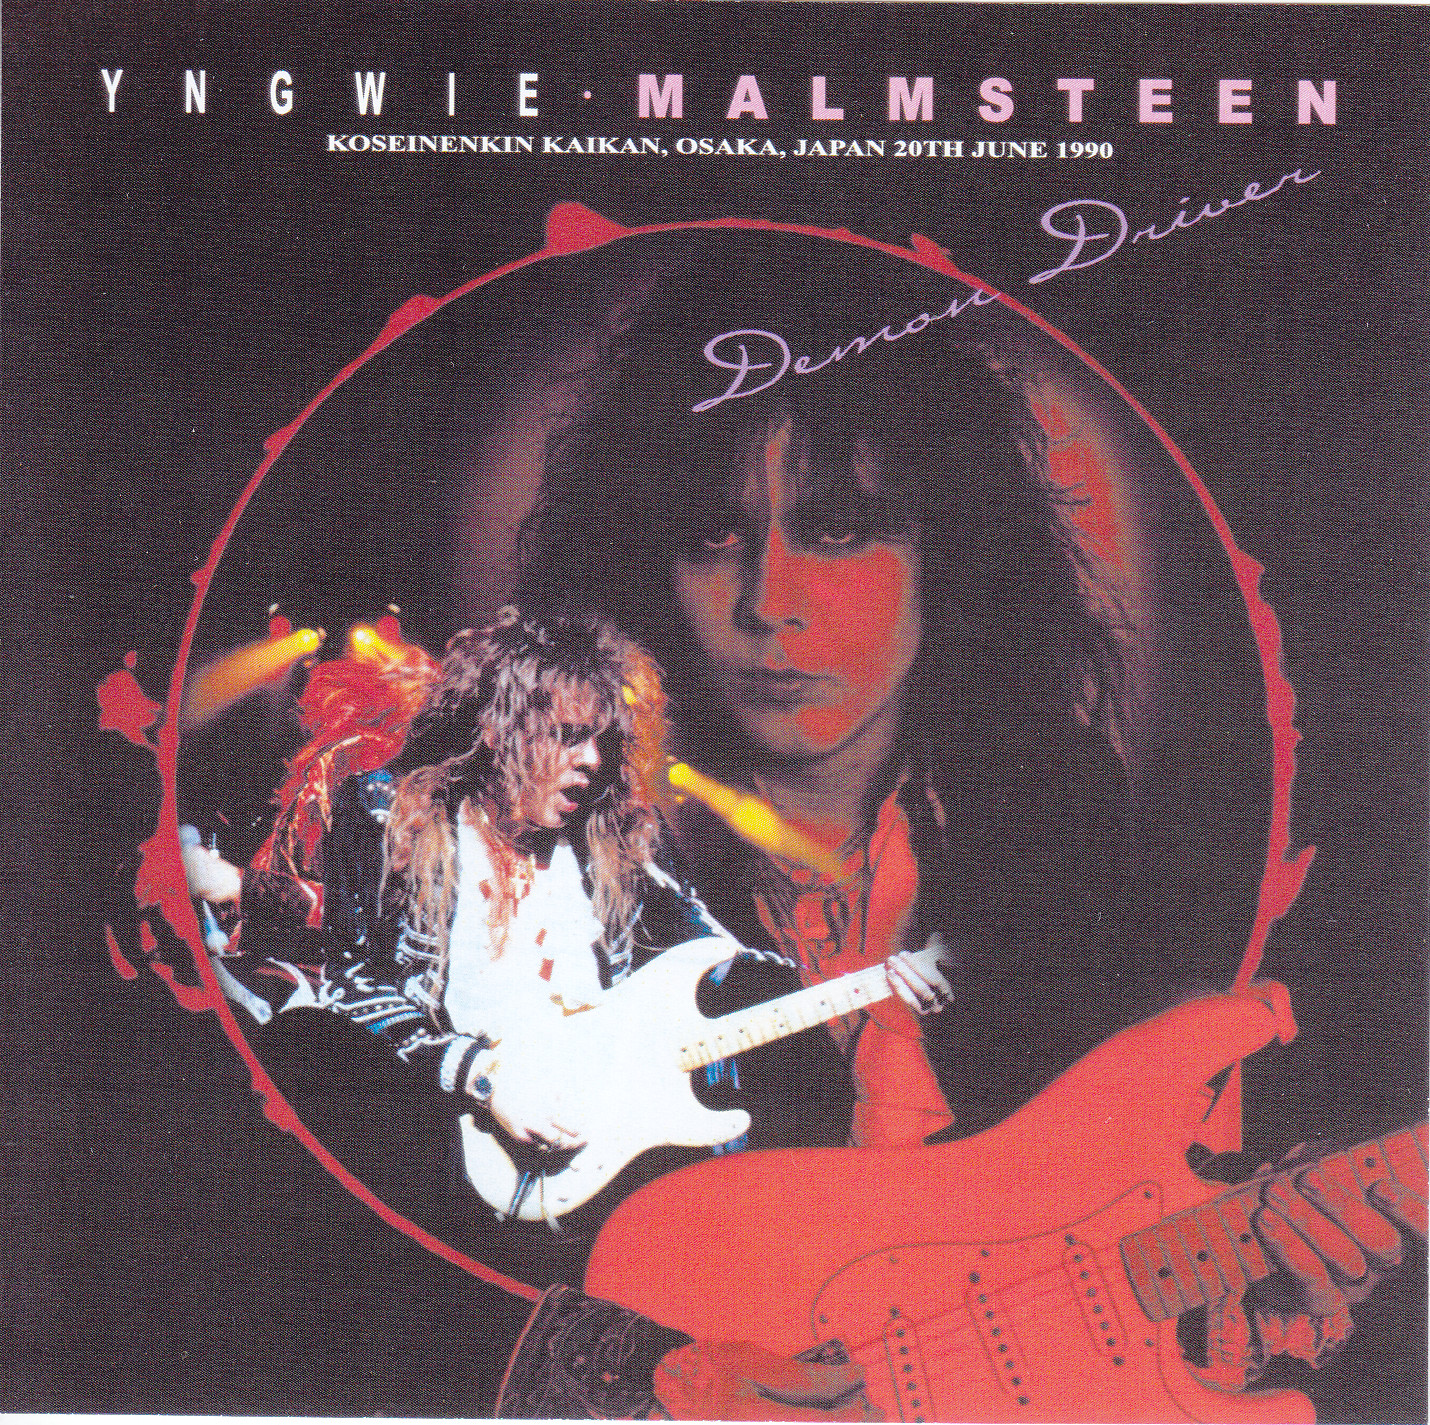 YNGWIE MALMSTEEN DEMON DESCARGAR DRIVER